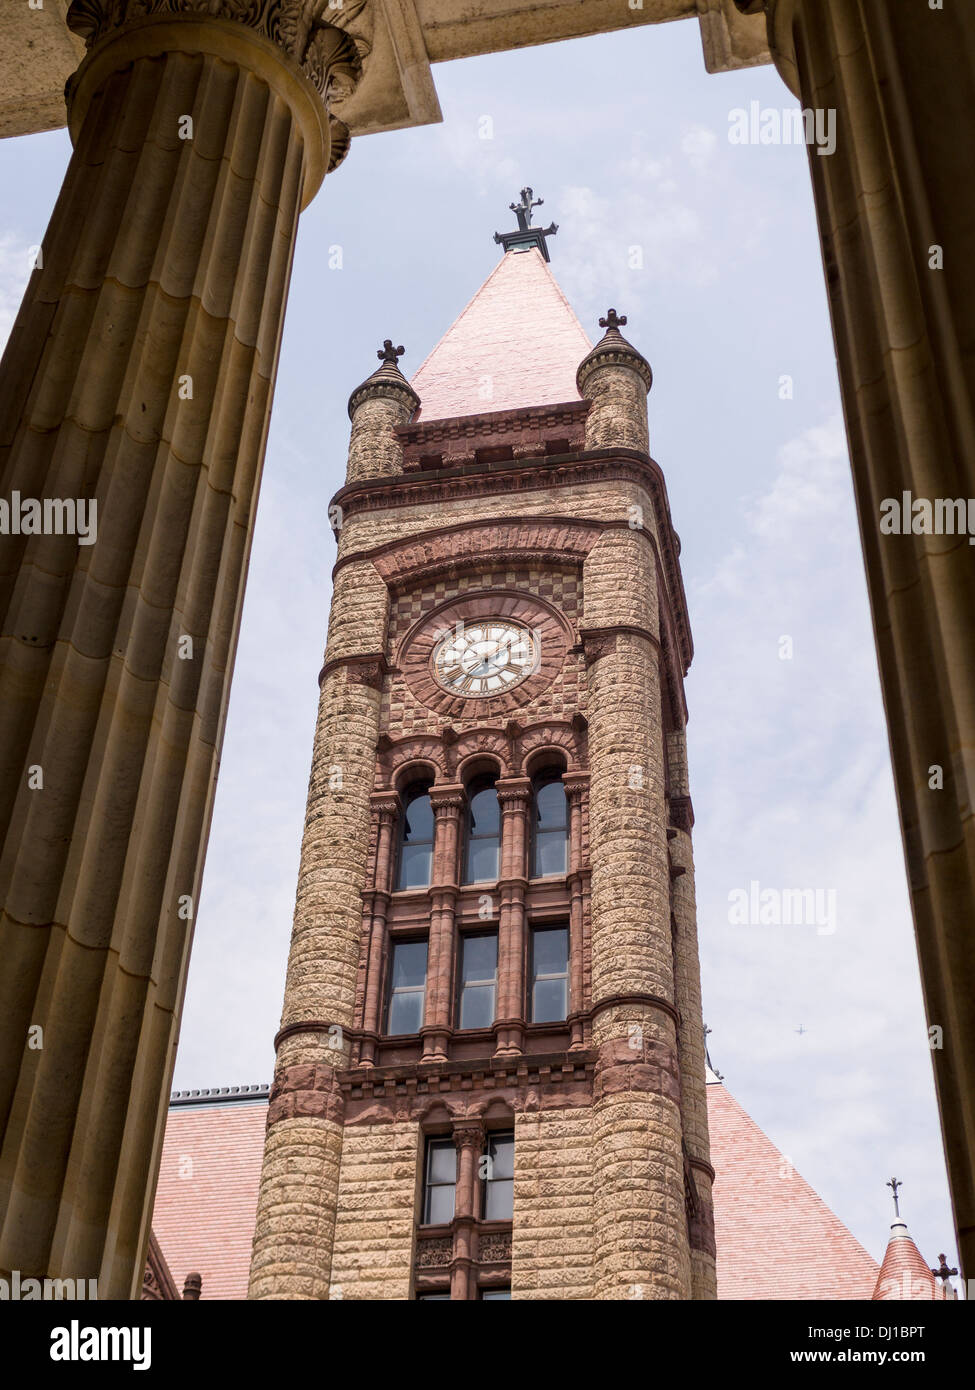 Cincinnati City Hall Clock tower. Framed by the tall Grecian columns of the Cathedral of St. Peter in Chains. Stock Photo